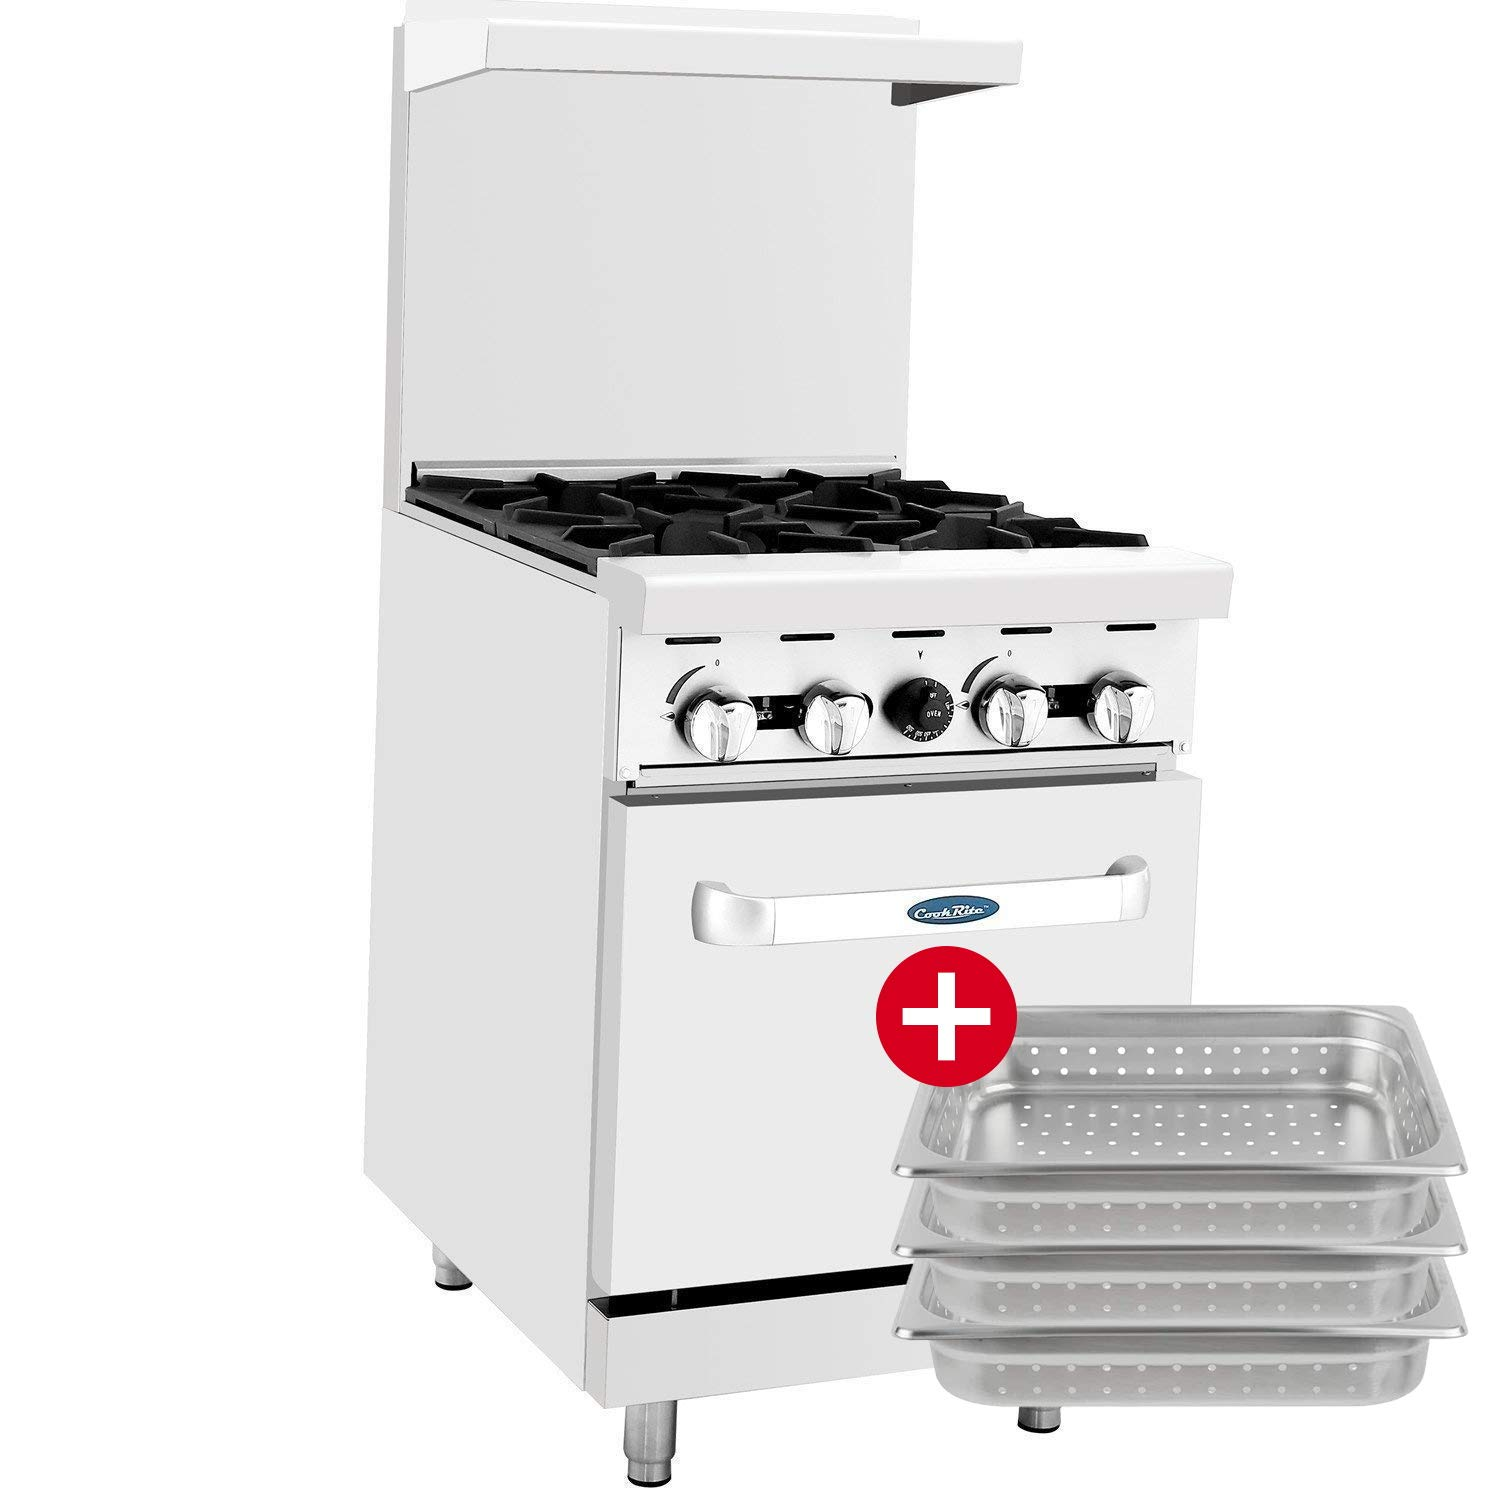 CookRite ATO-4B Commercial Natural Gas Range 24'' 4 Burner Hotplates With Standard Oven For Restaurant - 124,000 BTU by <br>ATOSA US